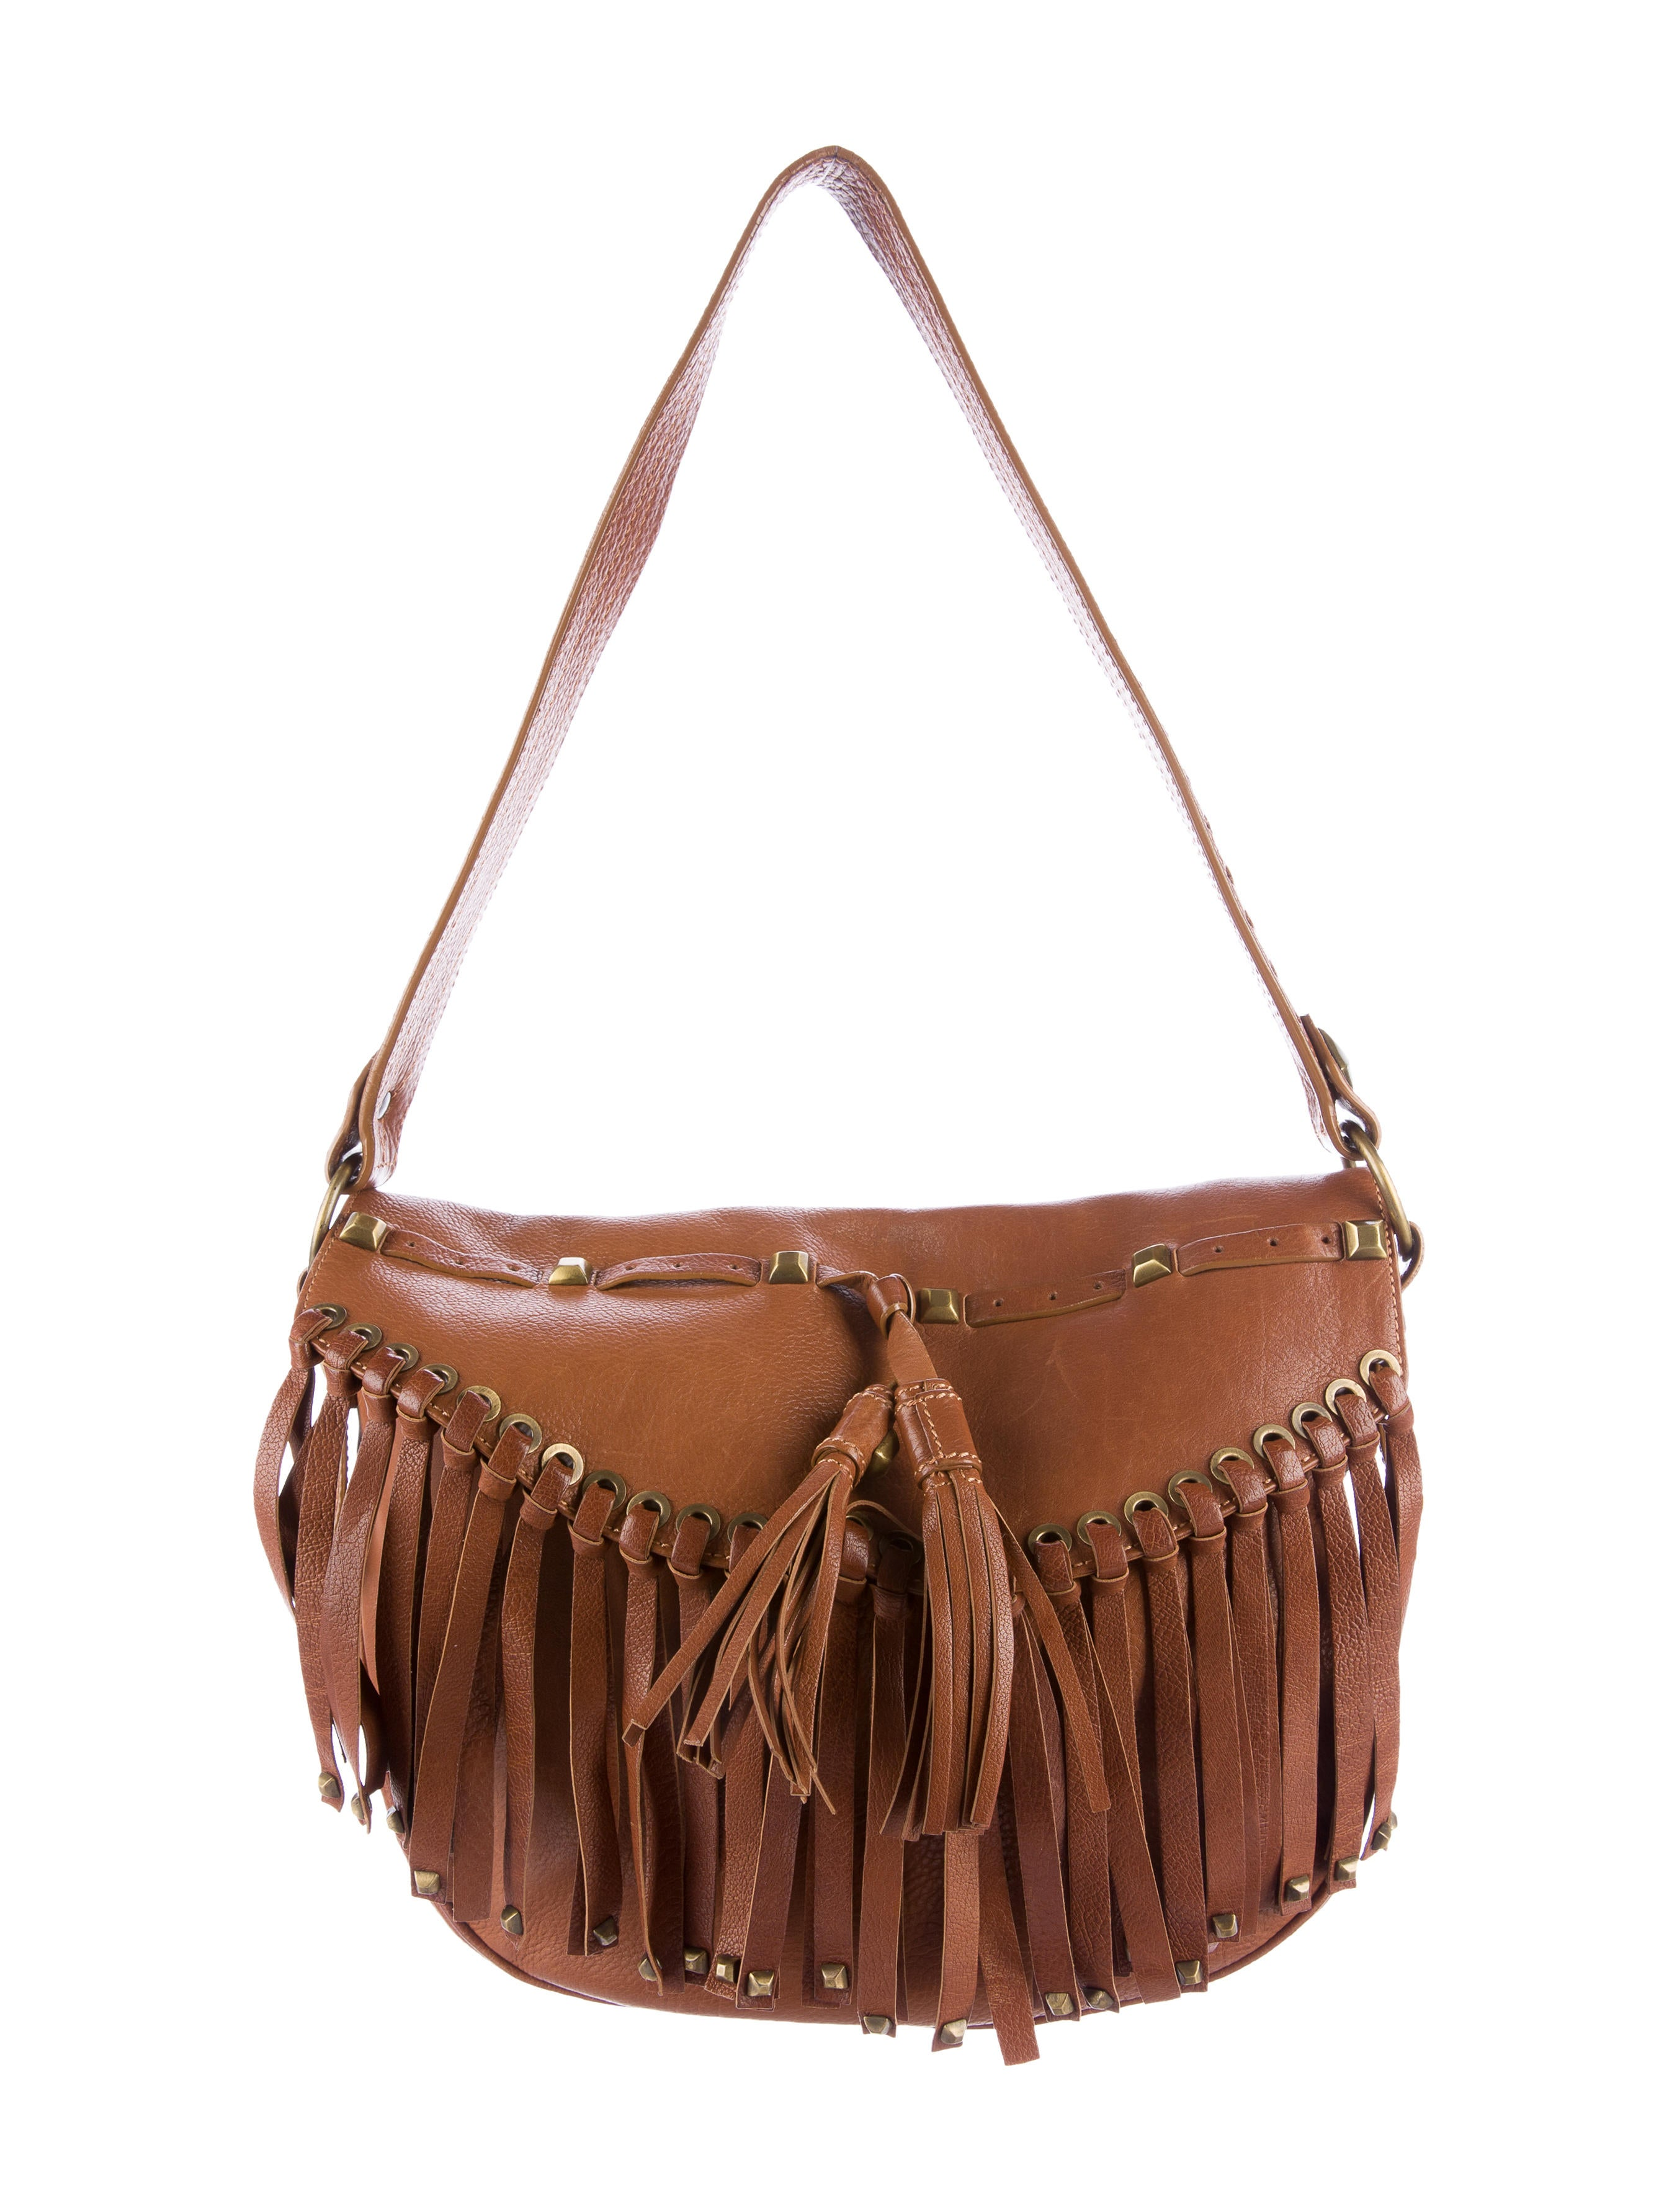 Shop Free People's beautiful boho bags, fringe purses, vegan totes, and more. Accessorize your outfit with a statement handbag that you could carry forever! Skip to main content. If you are a bohemian girl at heart, look towards our collection of leather and woven fringe bags. The more classic and modern girls will love our collection of.